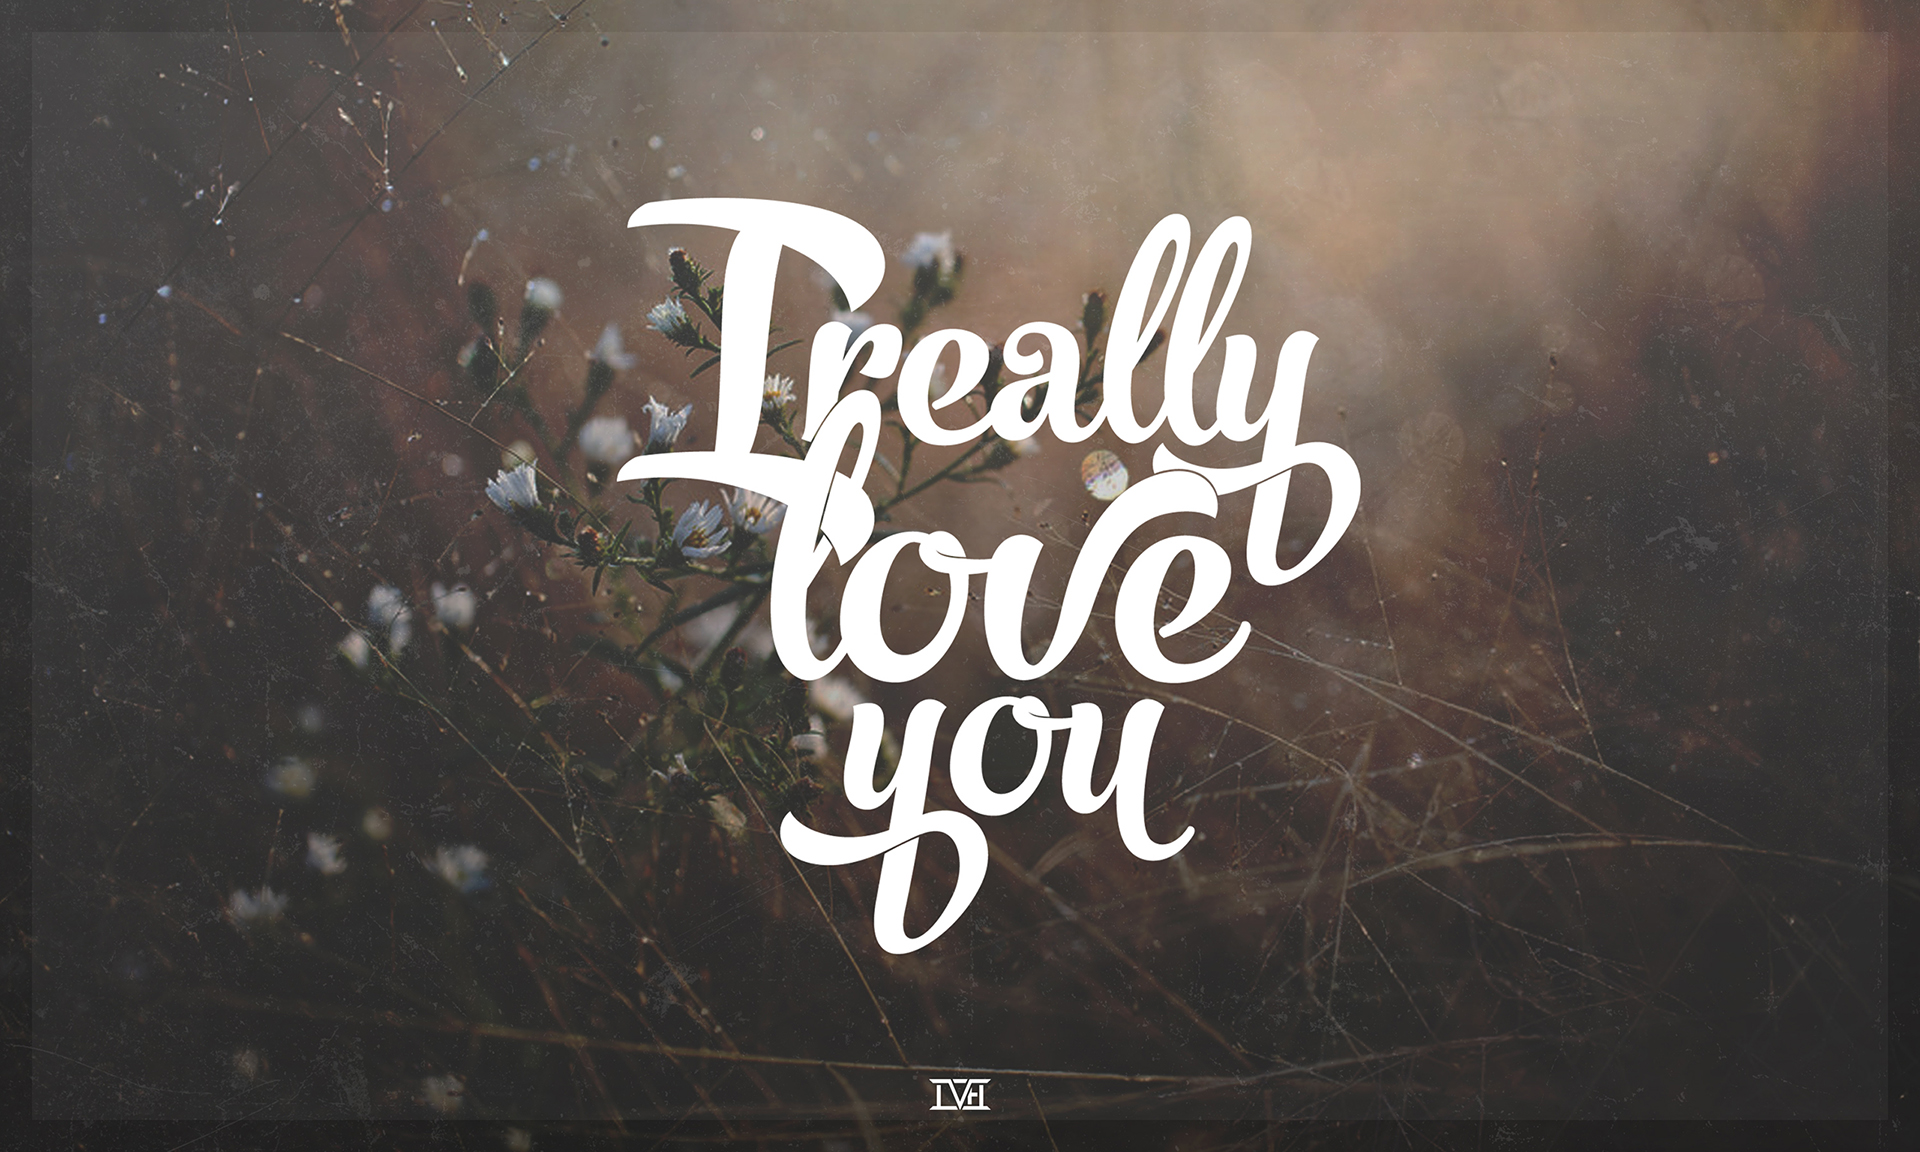 L Love You Wallpapers : Fond d ecran I Really Love You - Wallpaper